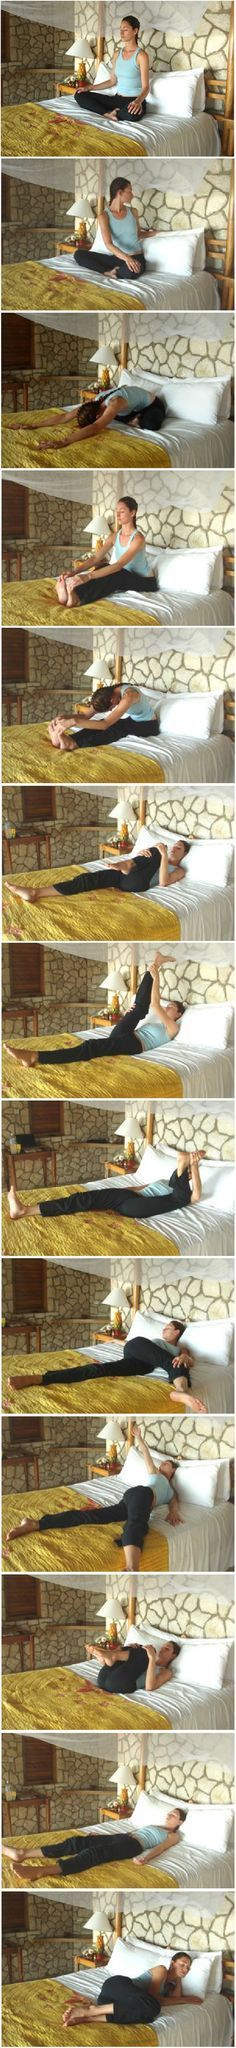 This is really the best pin of this bedtime yoga routine, with all the pictures in a row instead of at different pages! Btw, it totally helps you sleep better! Bedtime Yoga from womenshealthmag.com